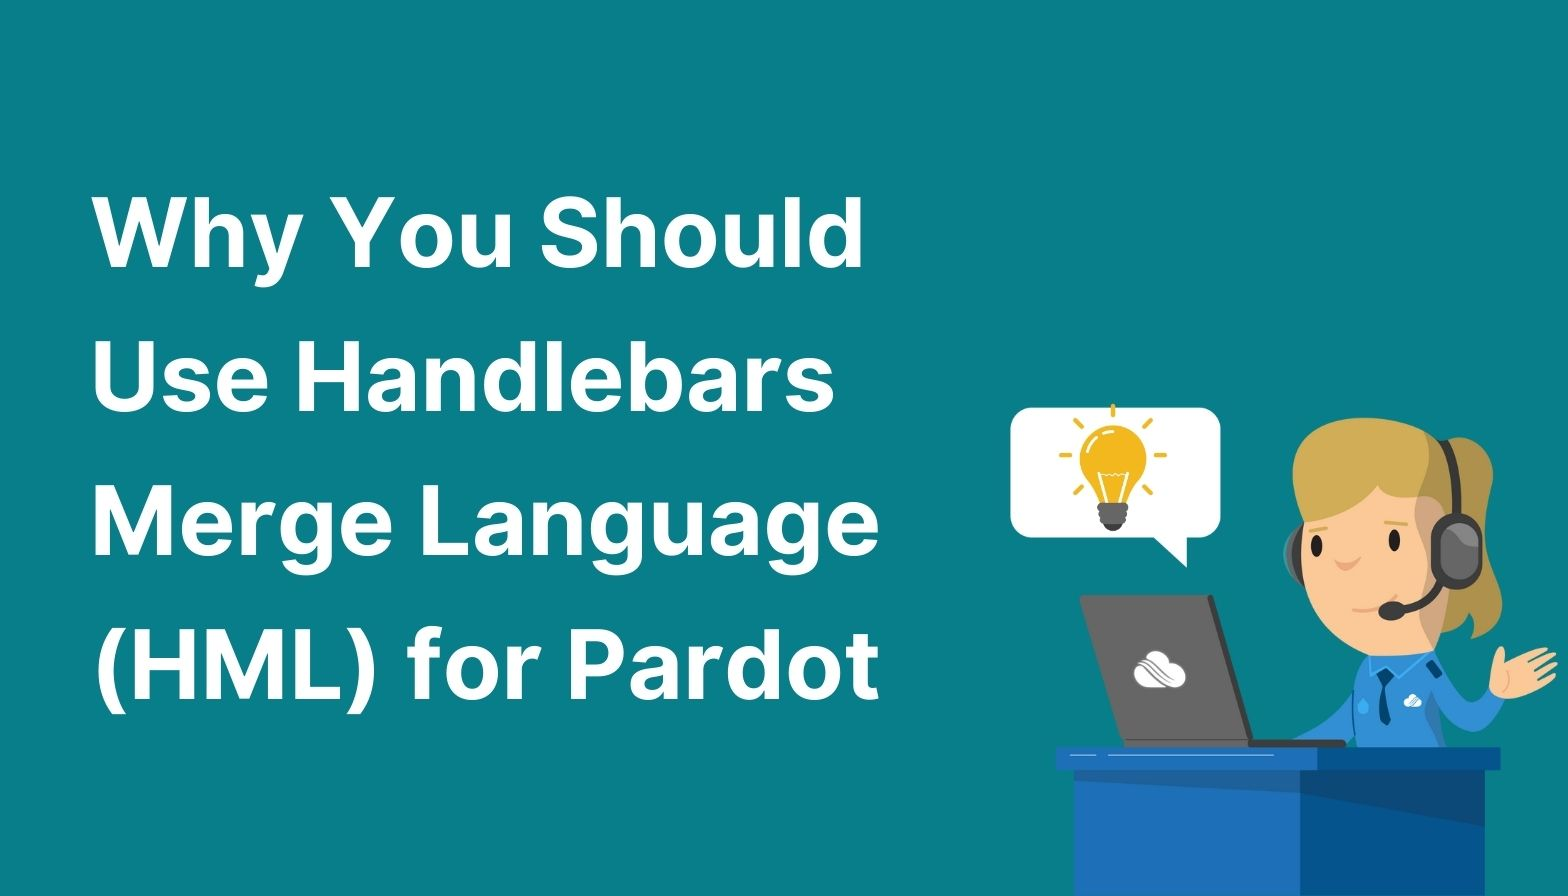 Feature image: Why you should use handlebars merge language (HML) for Pardot